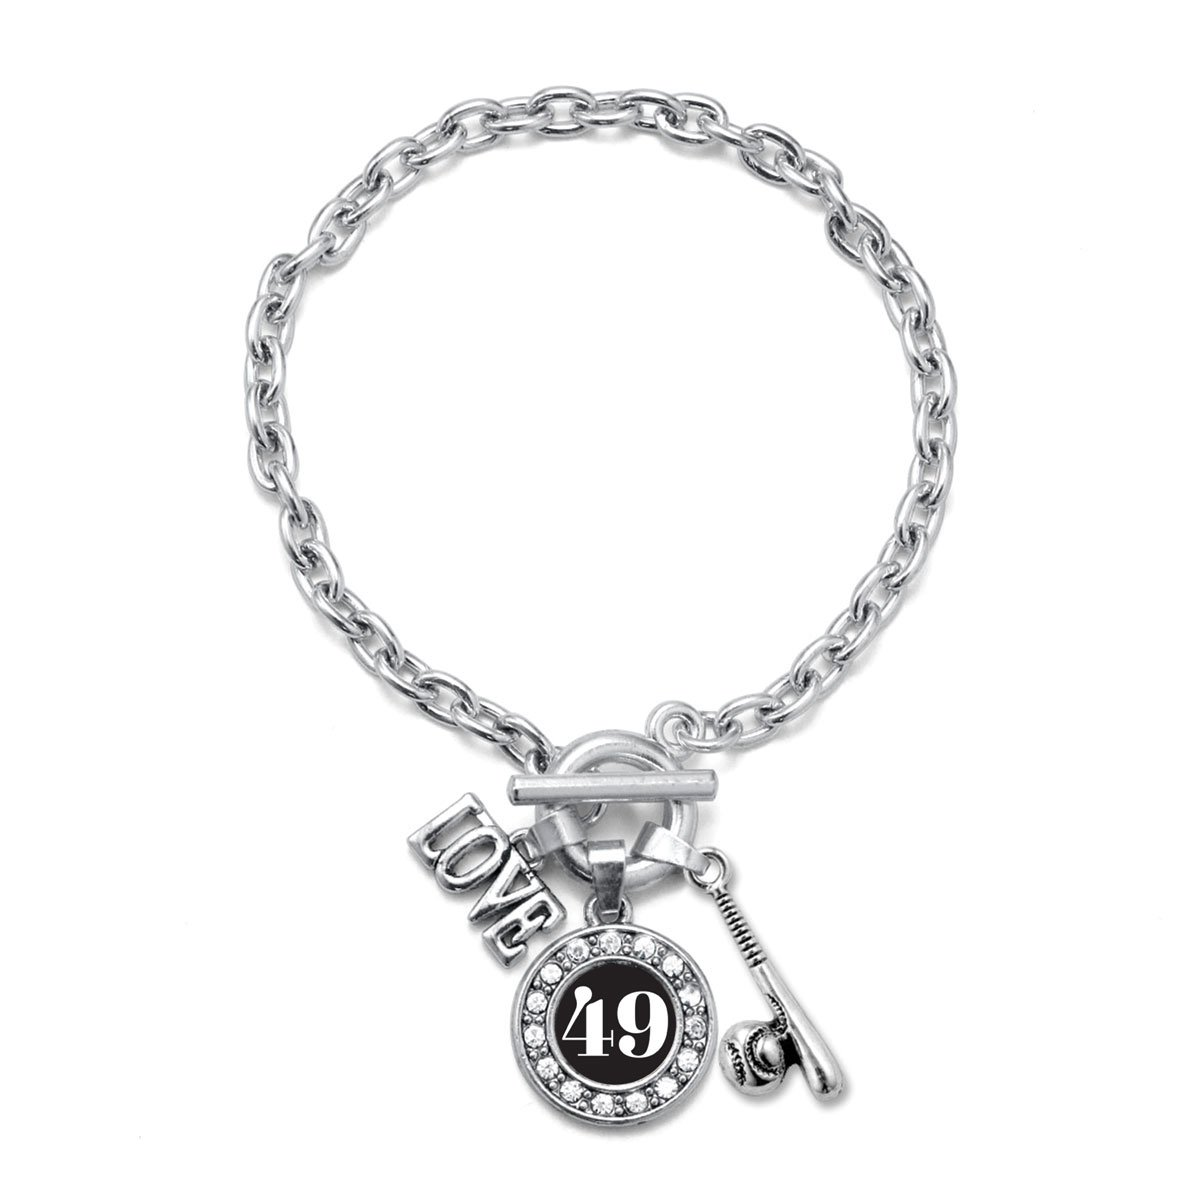 Number 49 Inspired Silver My Sports Number Circle Charm Baseball Bat Toggle Charm Bracelet